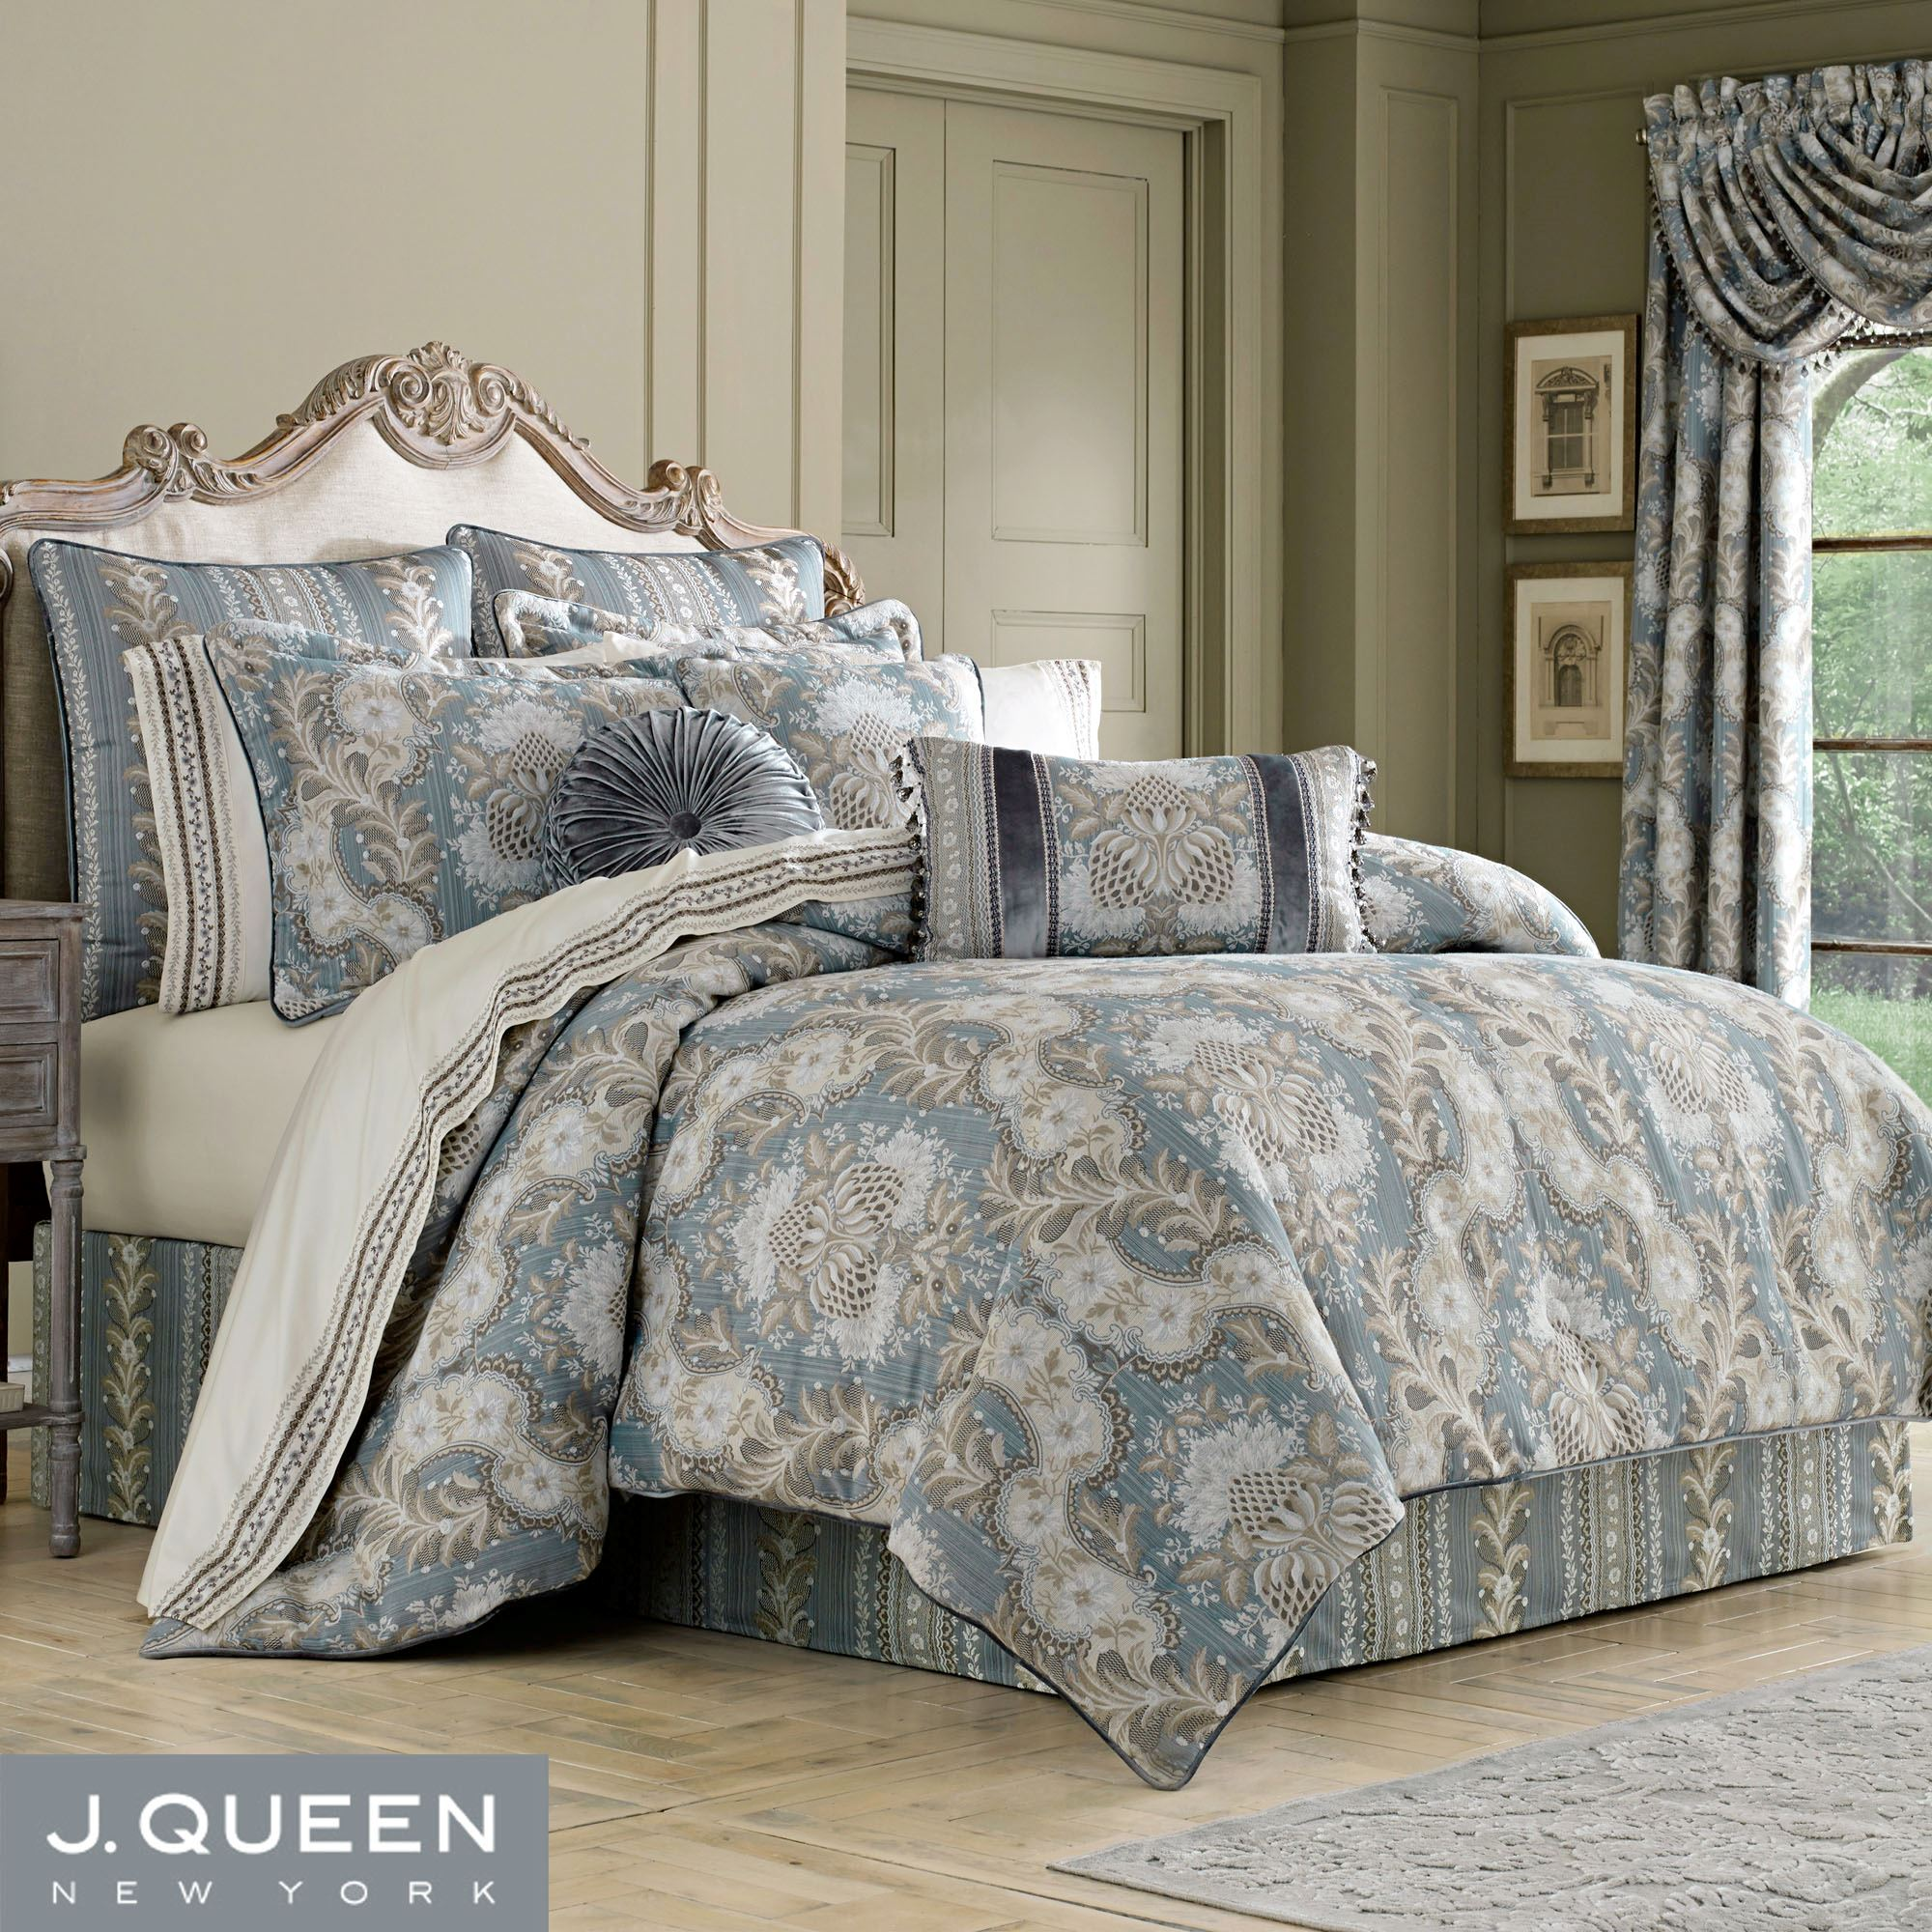 Bedroom Sets Clearance Free Shipping: Crystal Palace Acanthus Leaf French Blue Comforter Bedding